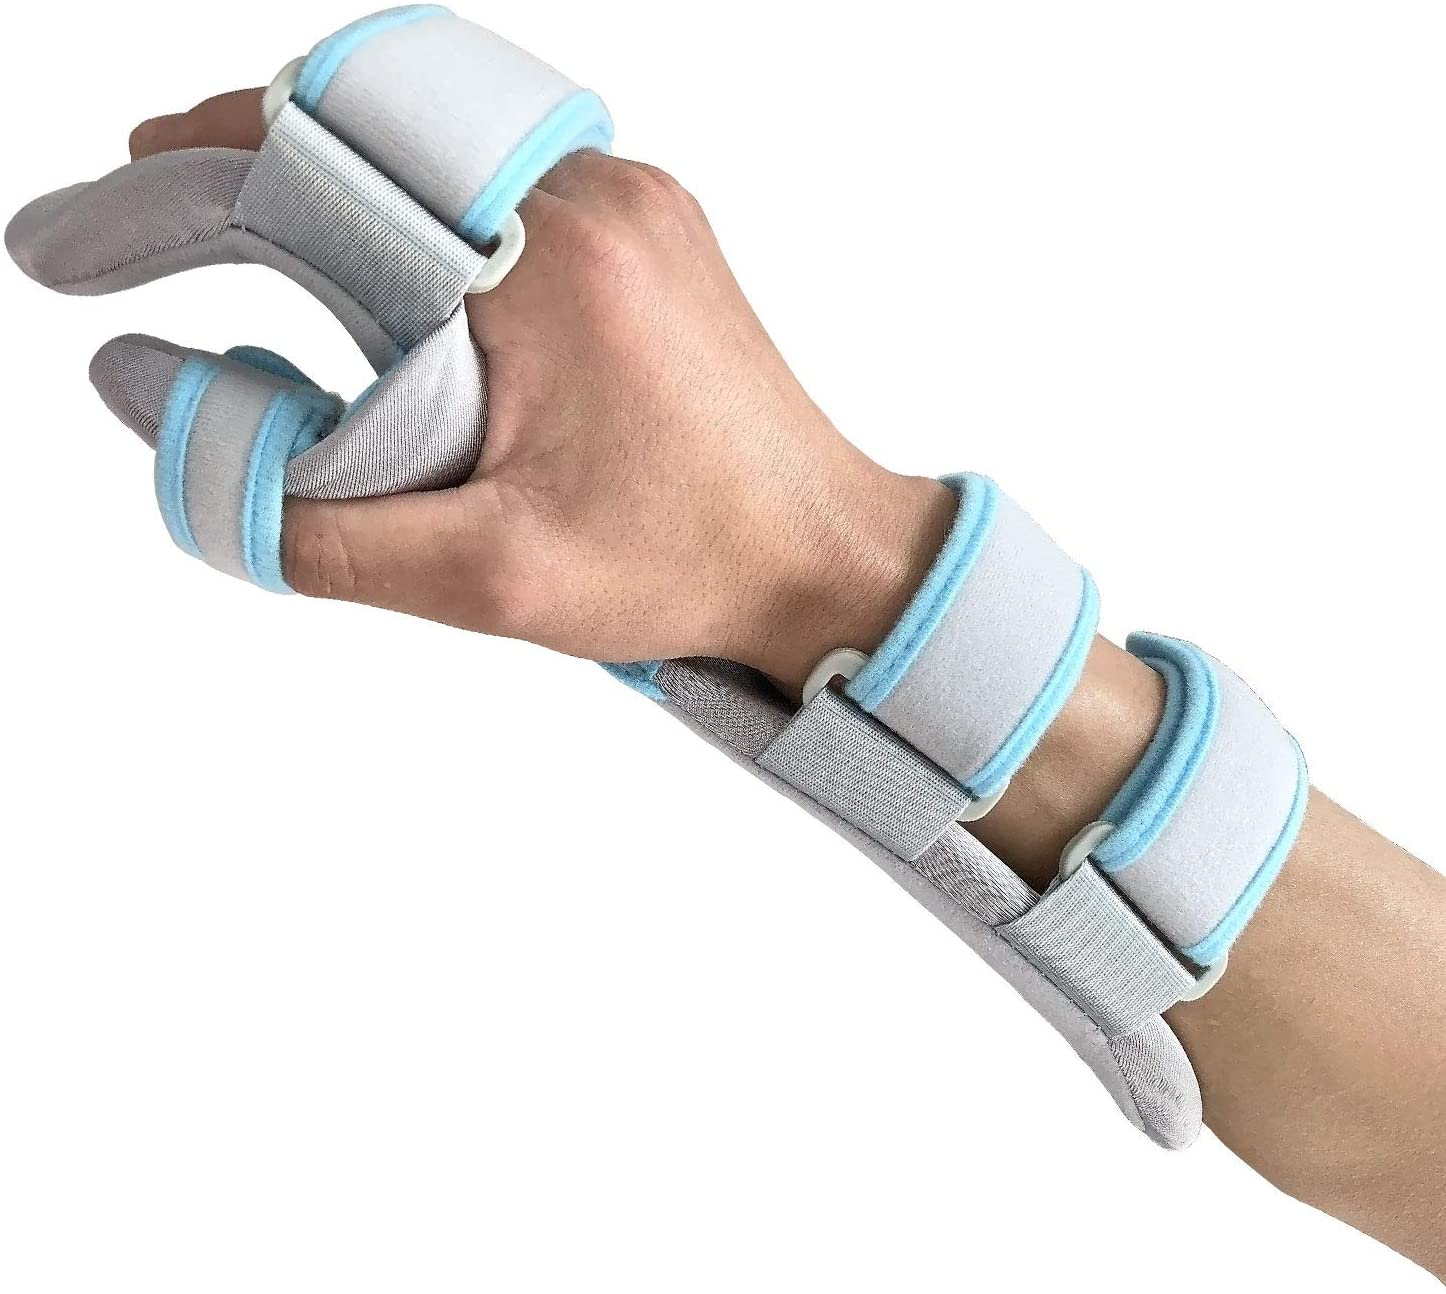 Hand Max 67% OFF Be super welcome Splint Functional Resting Support Wrist Stabilizin Moderate